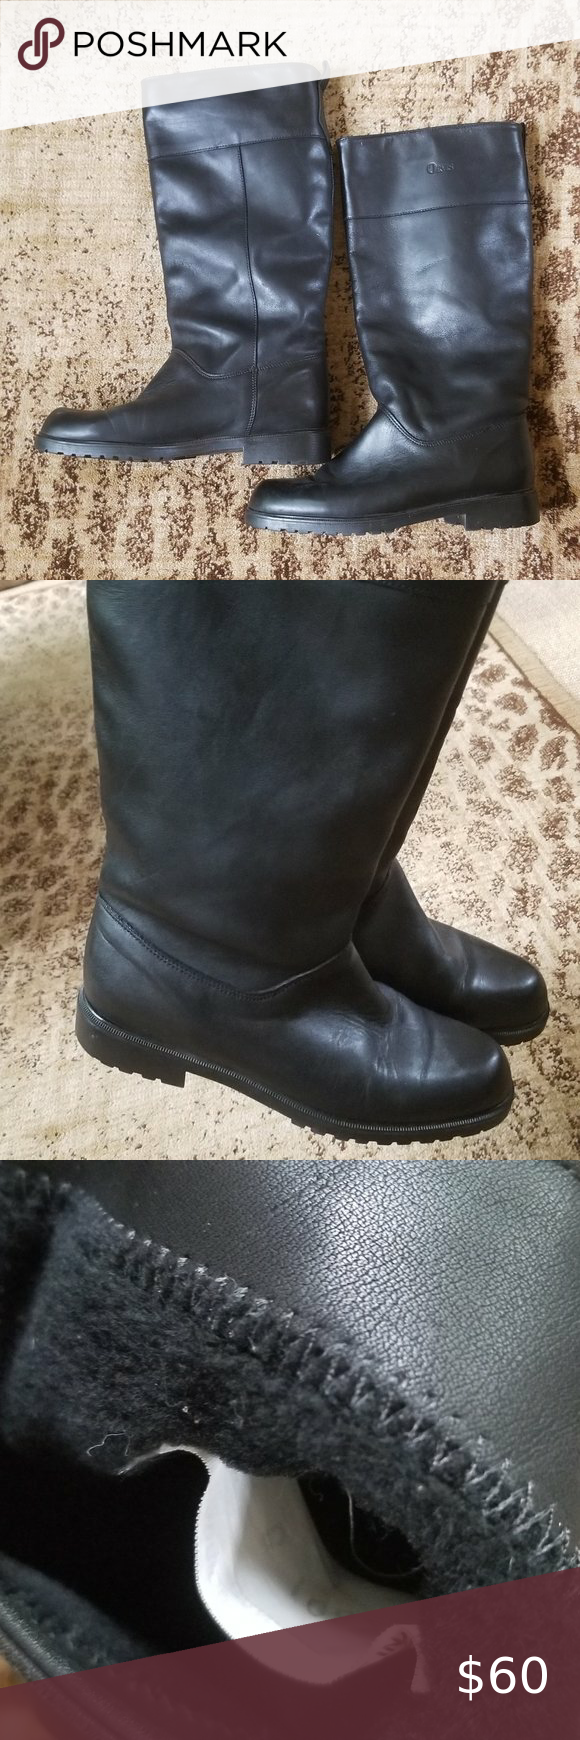 leather tall black boots. Fleece lined